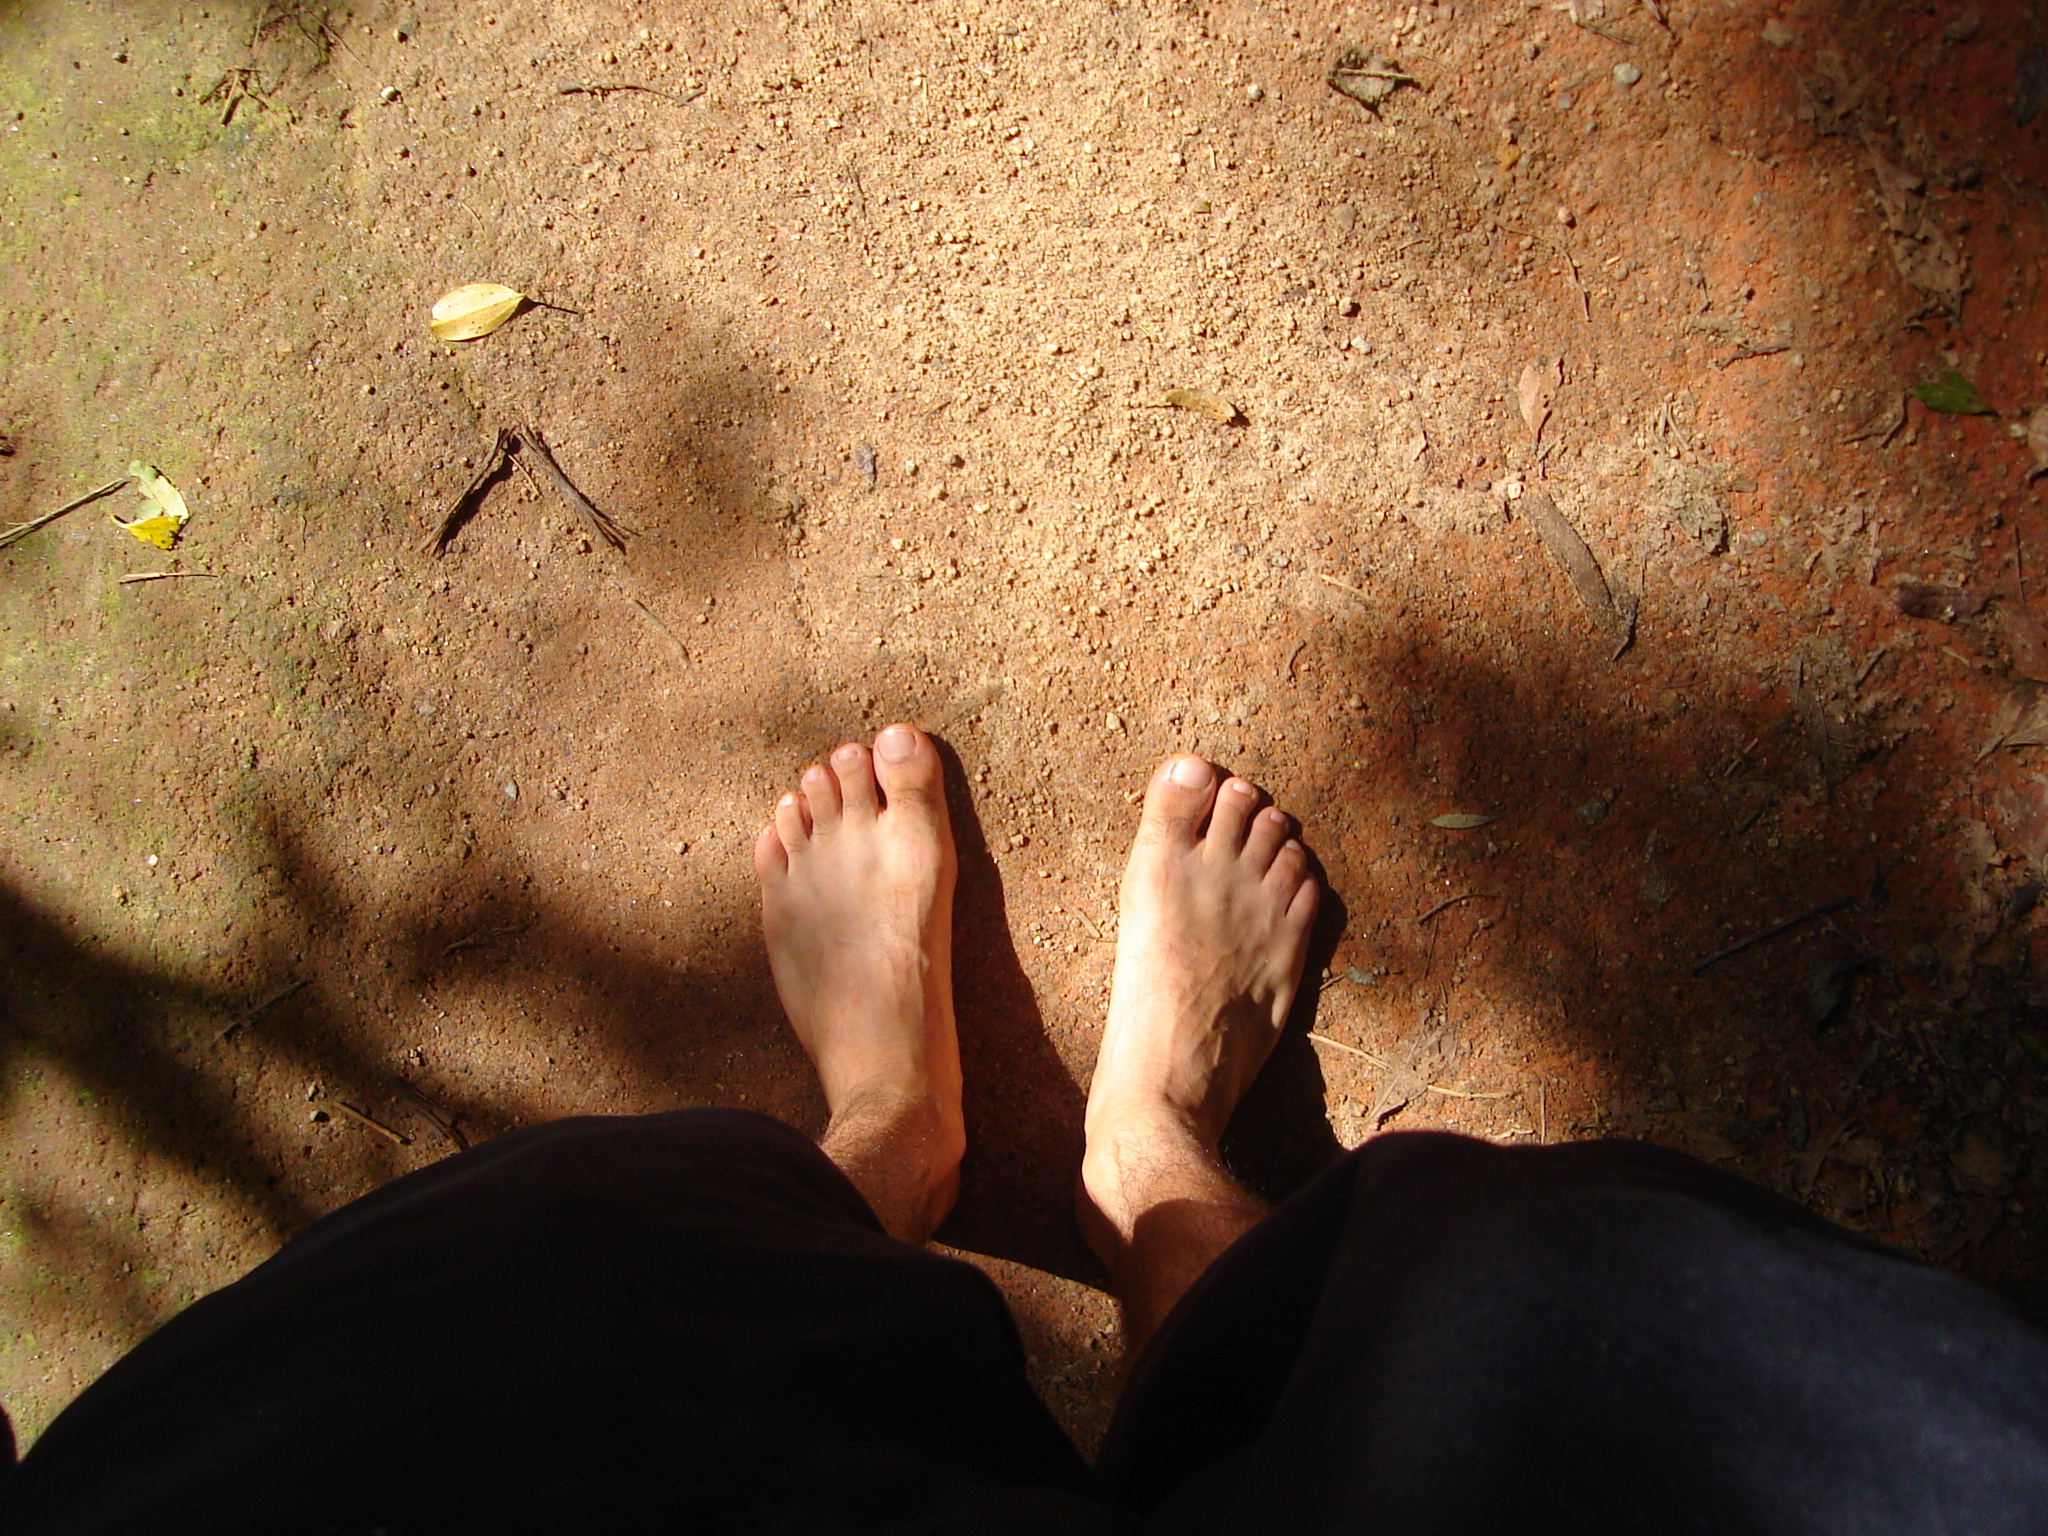 poows nature characters humanparts feet zen ground texture man top